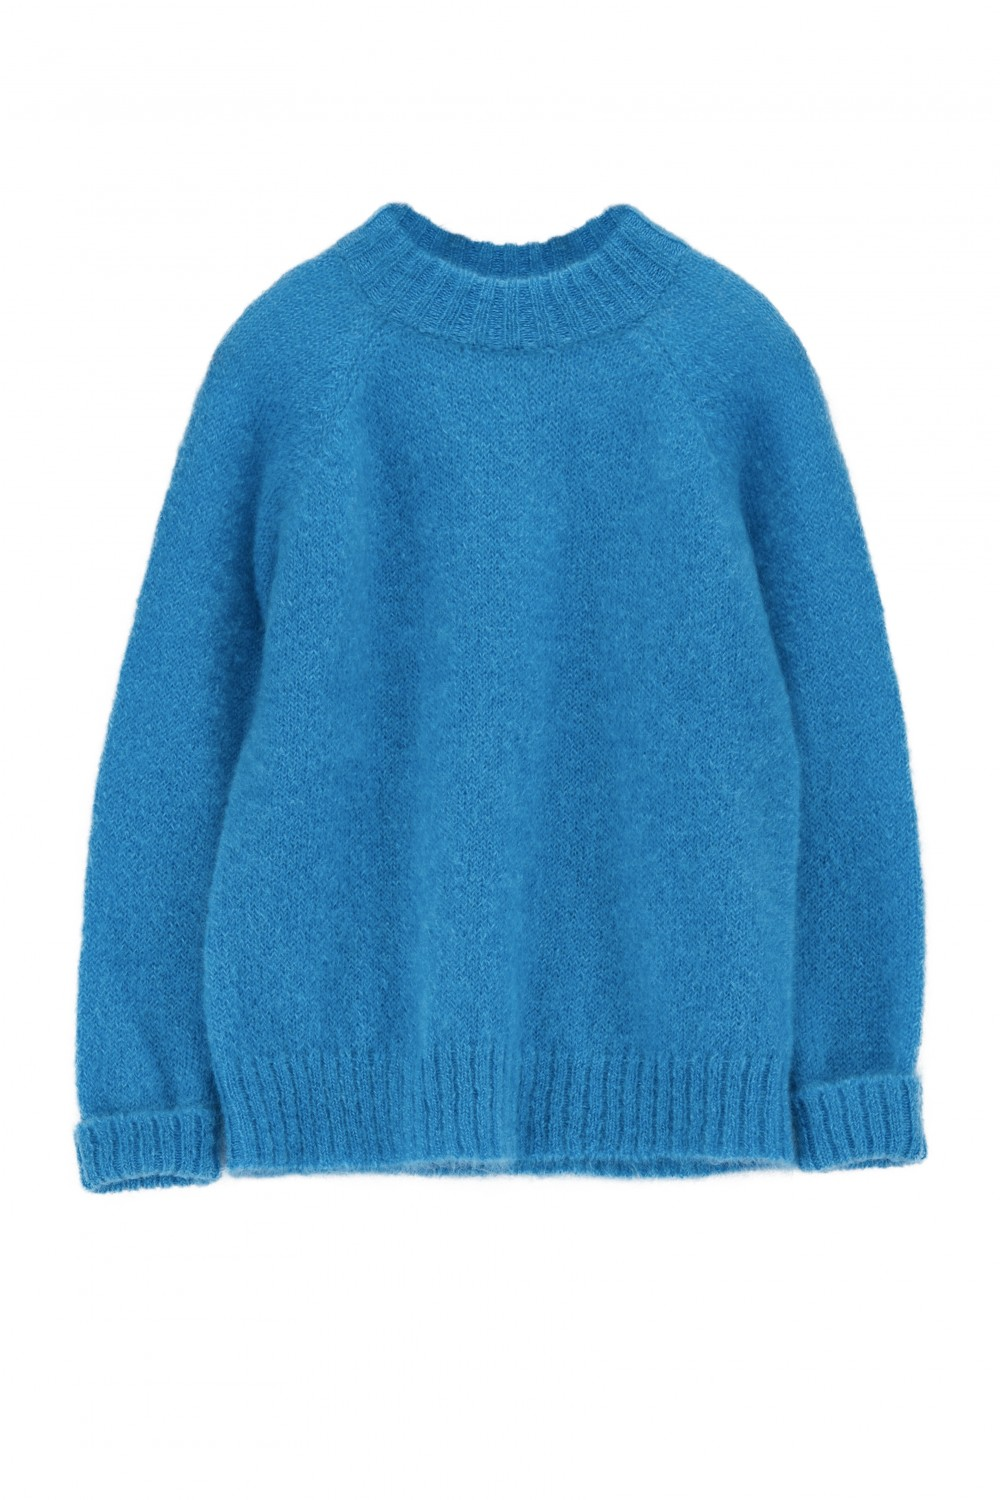 Iben Monty Sweater Spark Blue